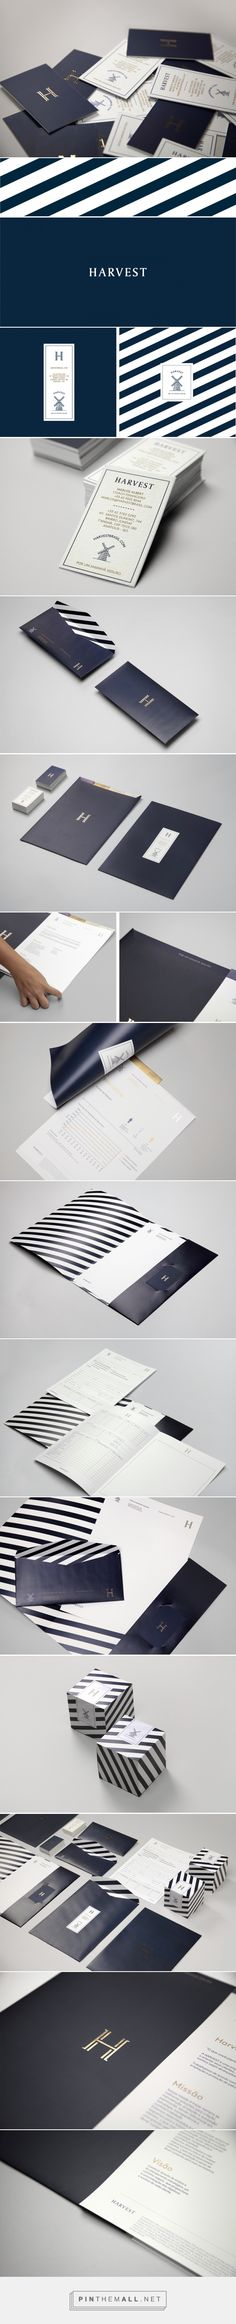 Harvest Branding on Behance | Fivestar Branding – Design and Branding Agency…